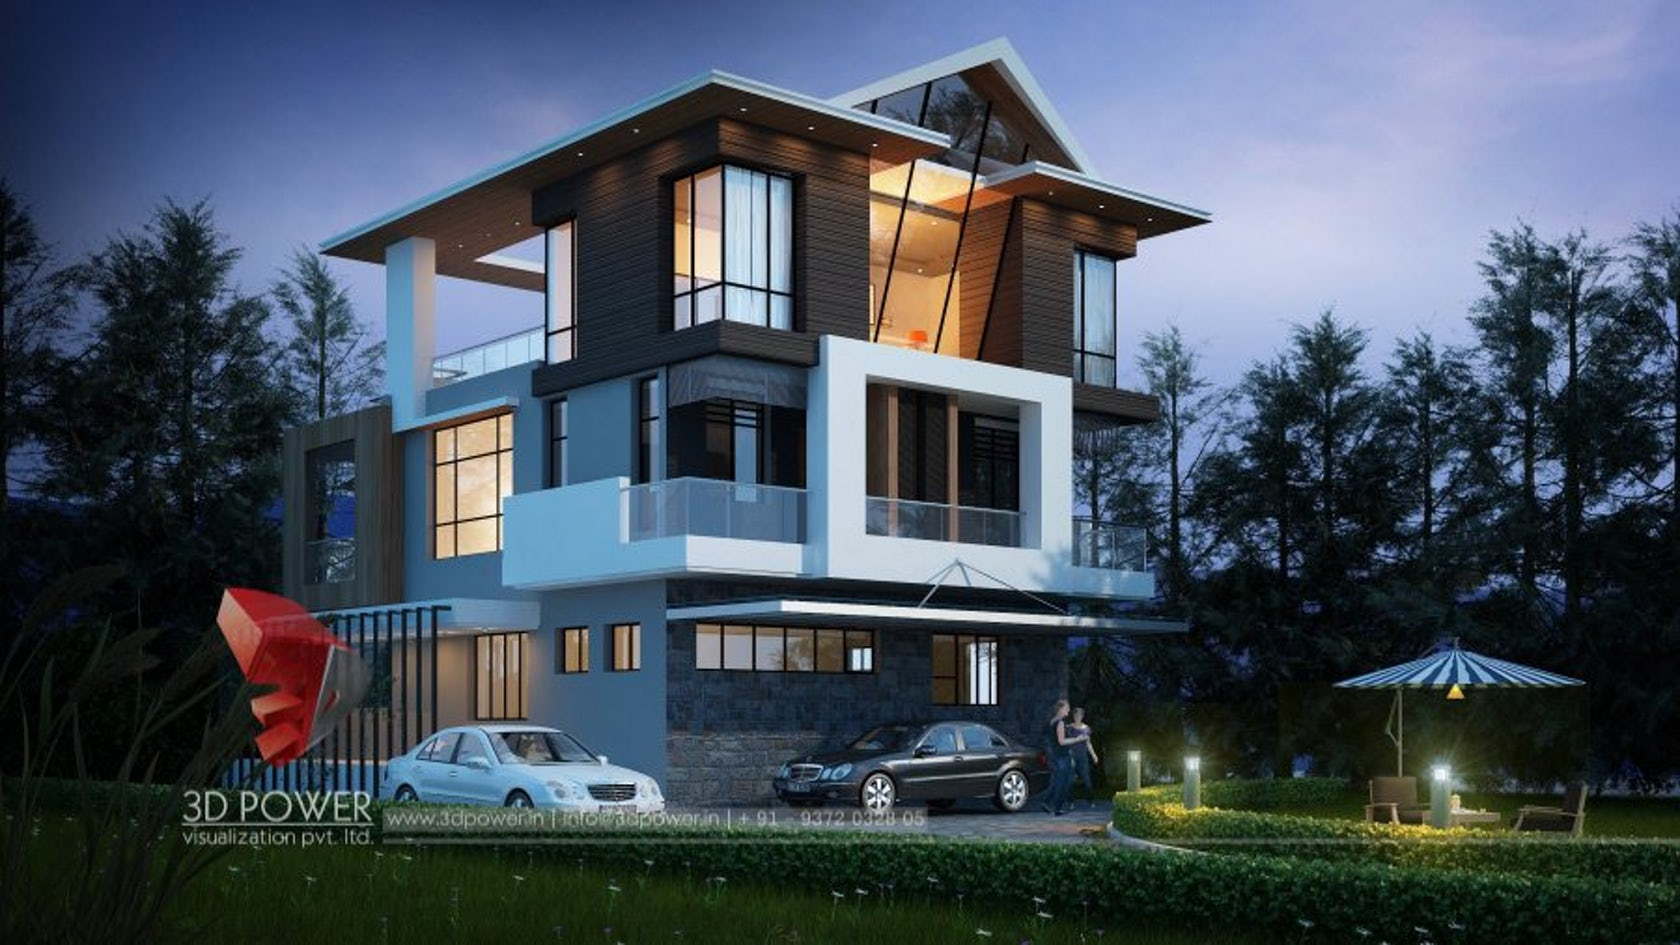 luxurious 3d modern bungalow rendering elevation design by 3d power on architizer - Elevation Of Bungalow